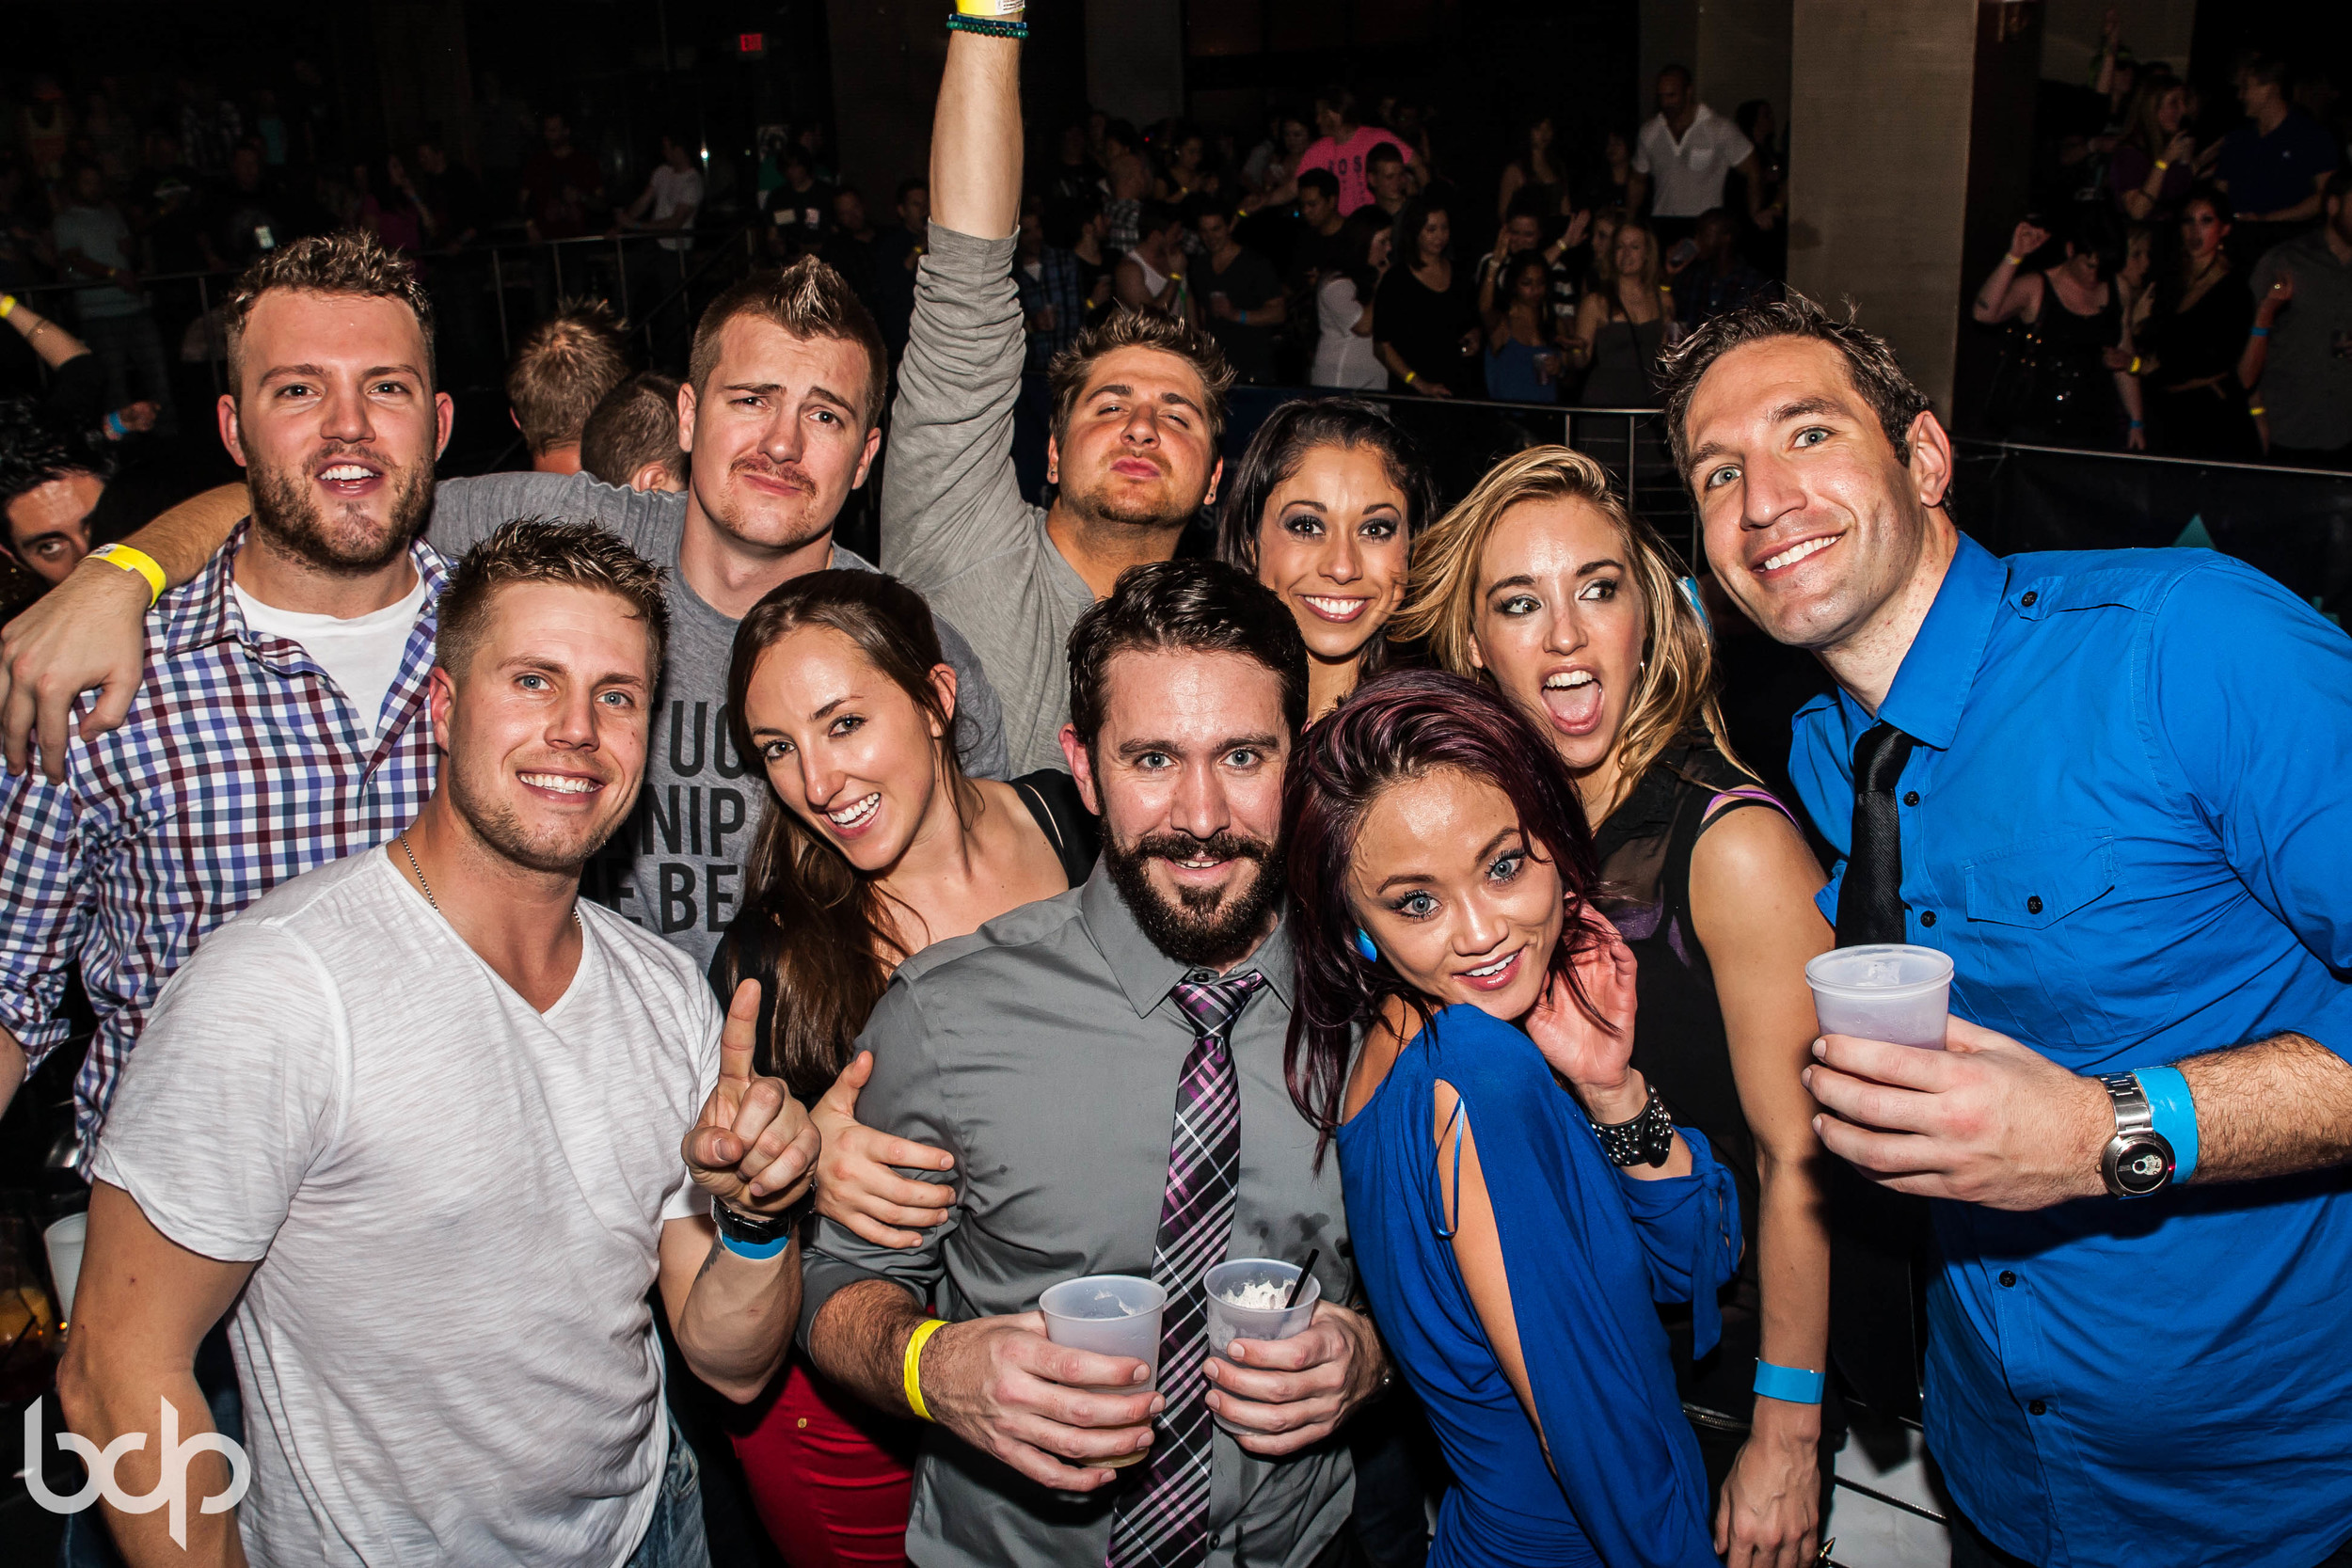 Aokify America Tour at Epic at Epic 110913 BDP-19.jpg